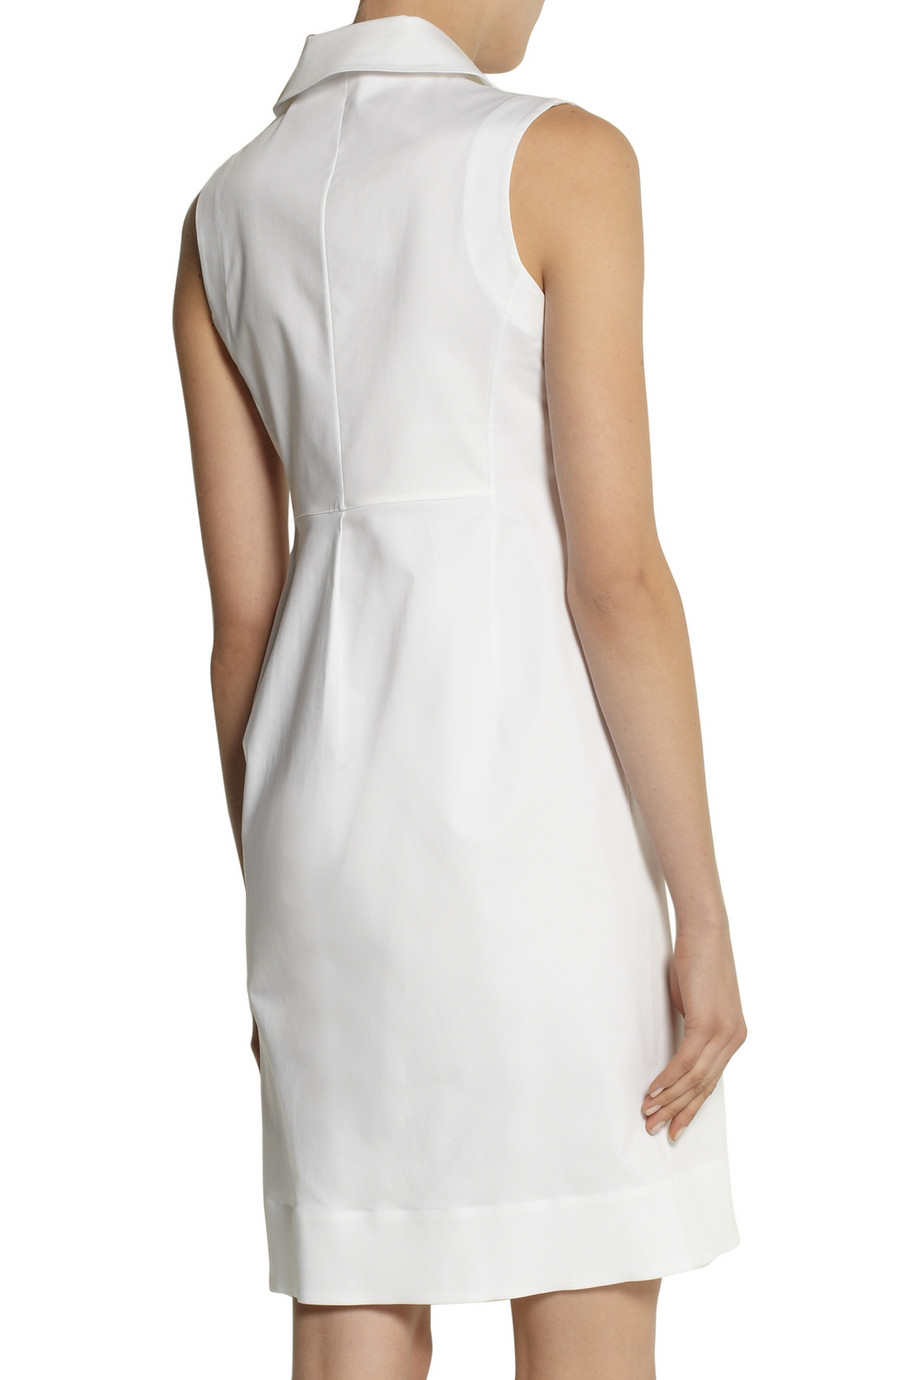 Jil sander stretch cotton shirt dress in white lyst for How to stretch a dress shirt